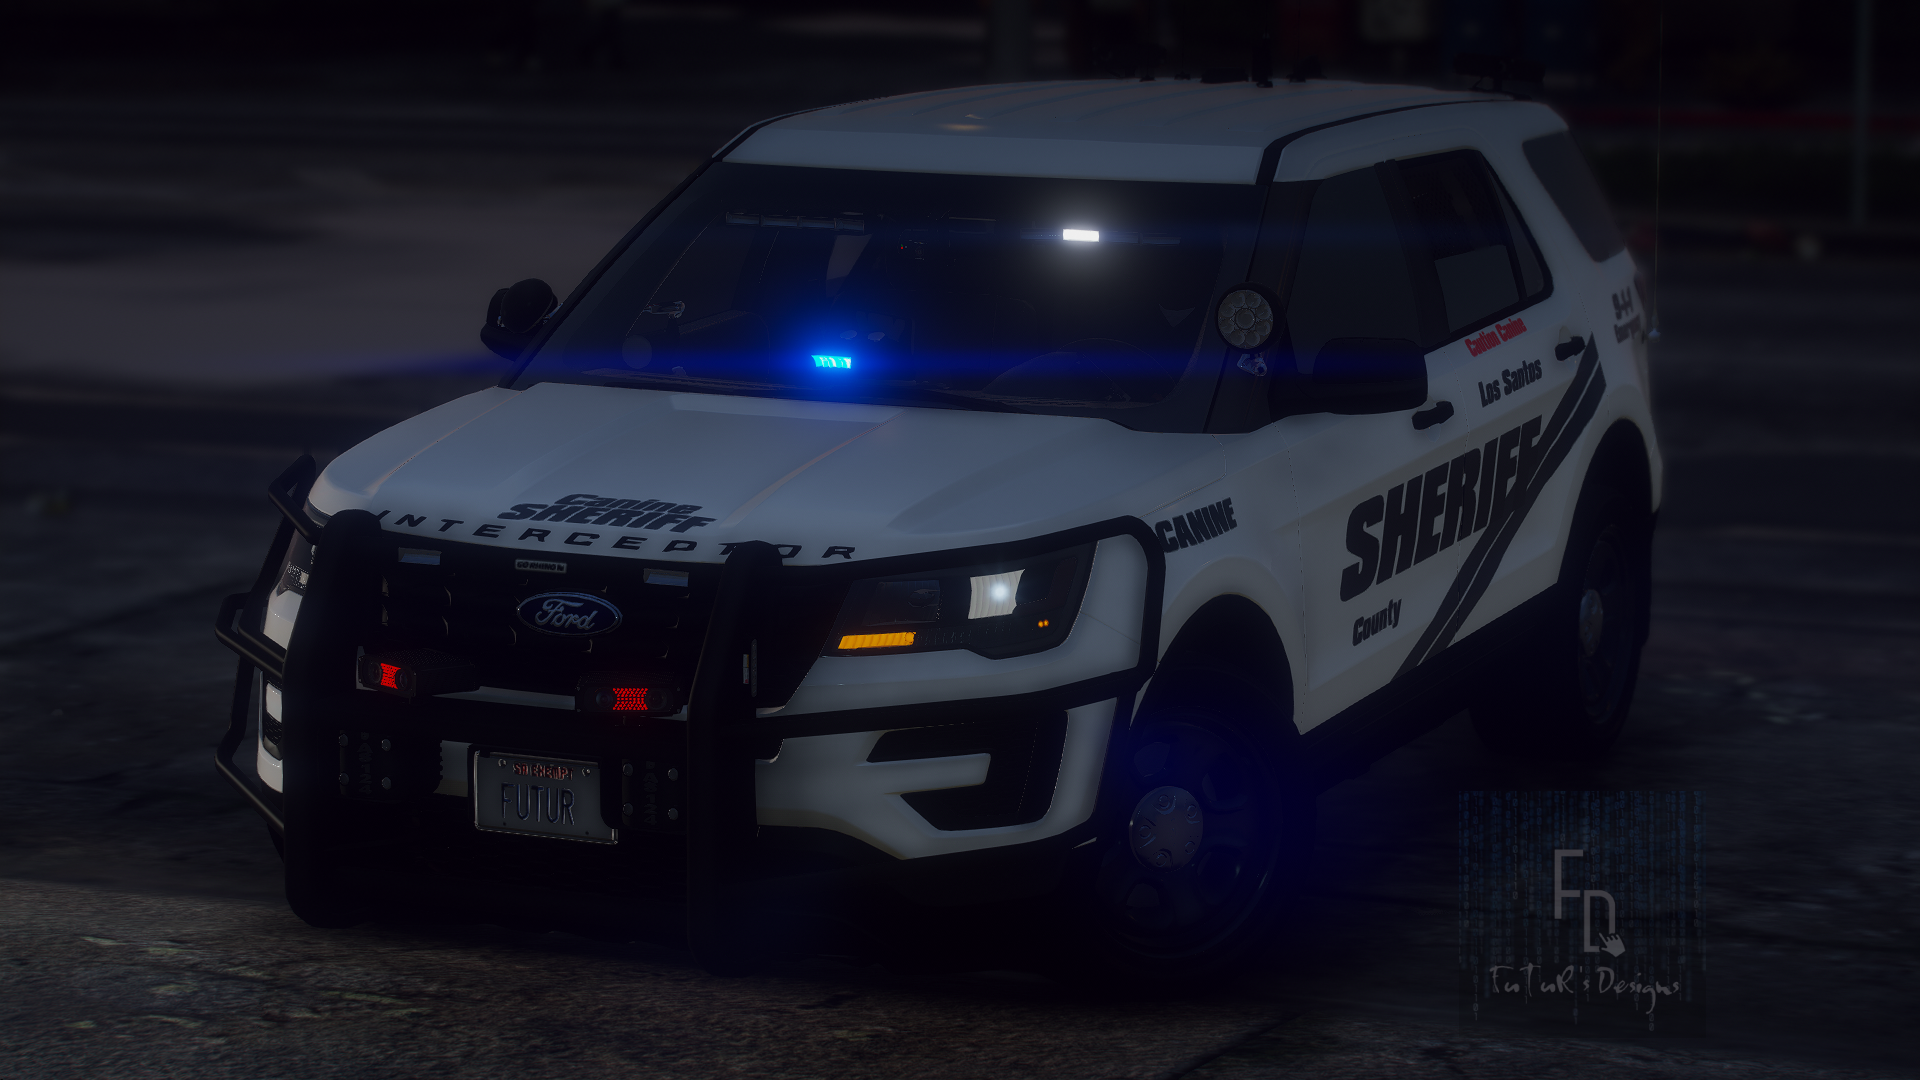 Grand_Theft_Auto_V_12_09_2021_21_18_06.png